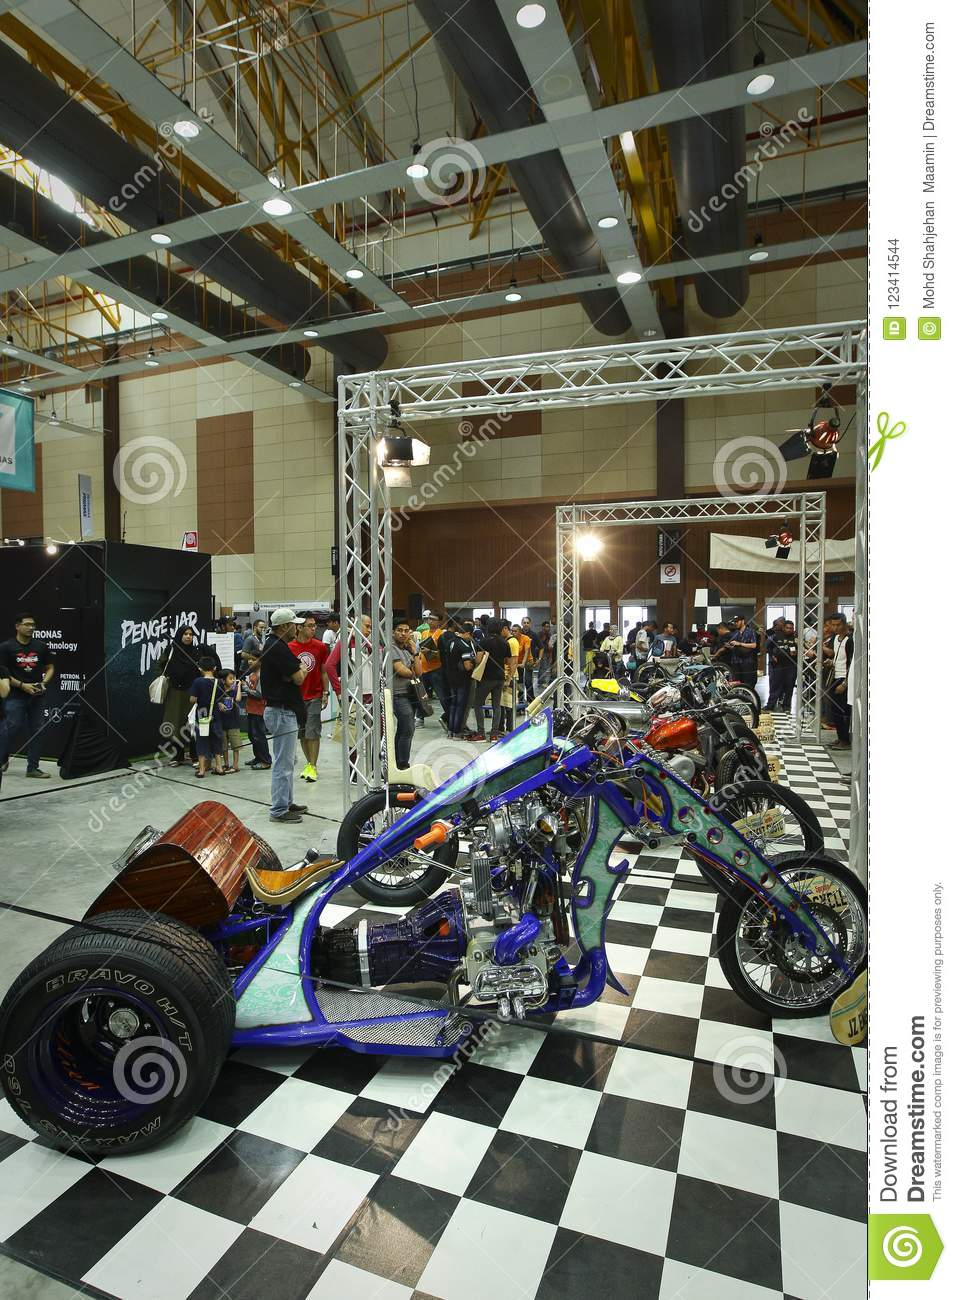 Festival Art Of Speed Malaysia 2018 an MAEPS